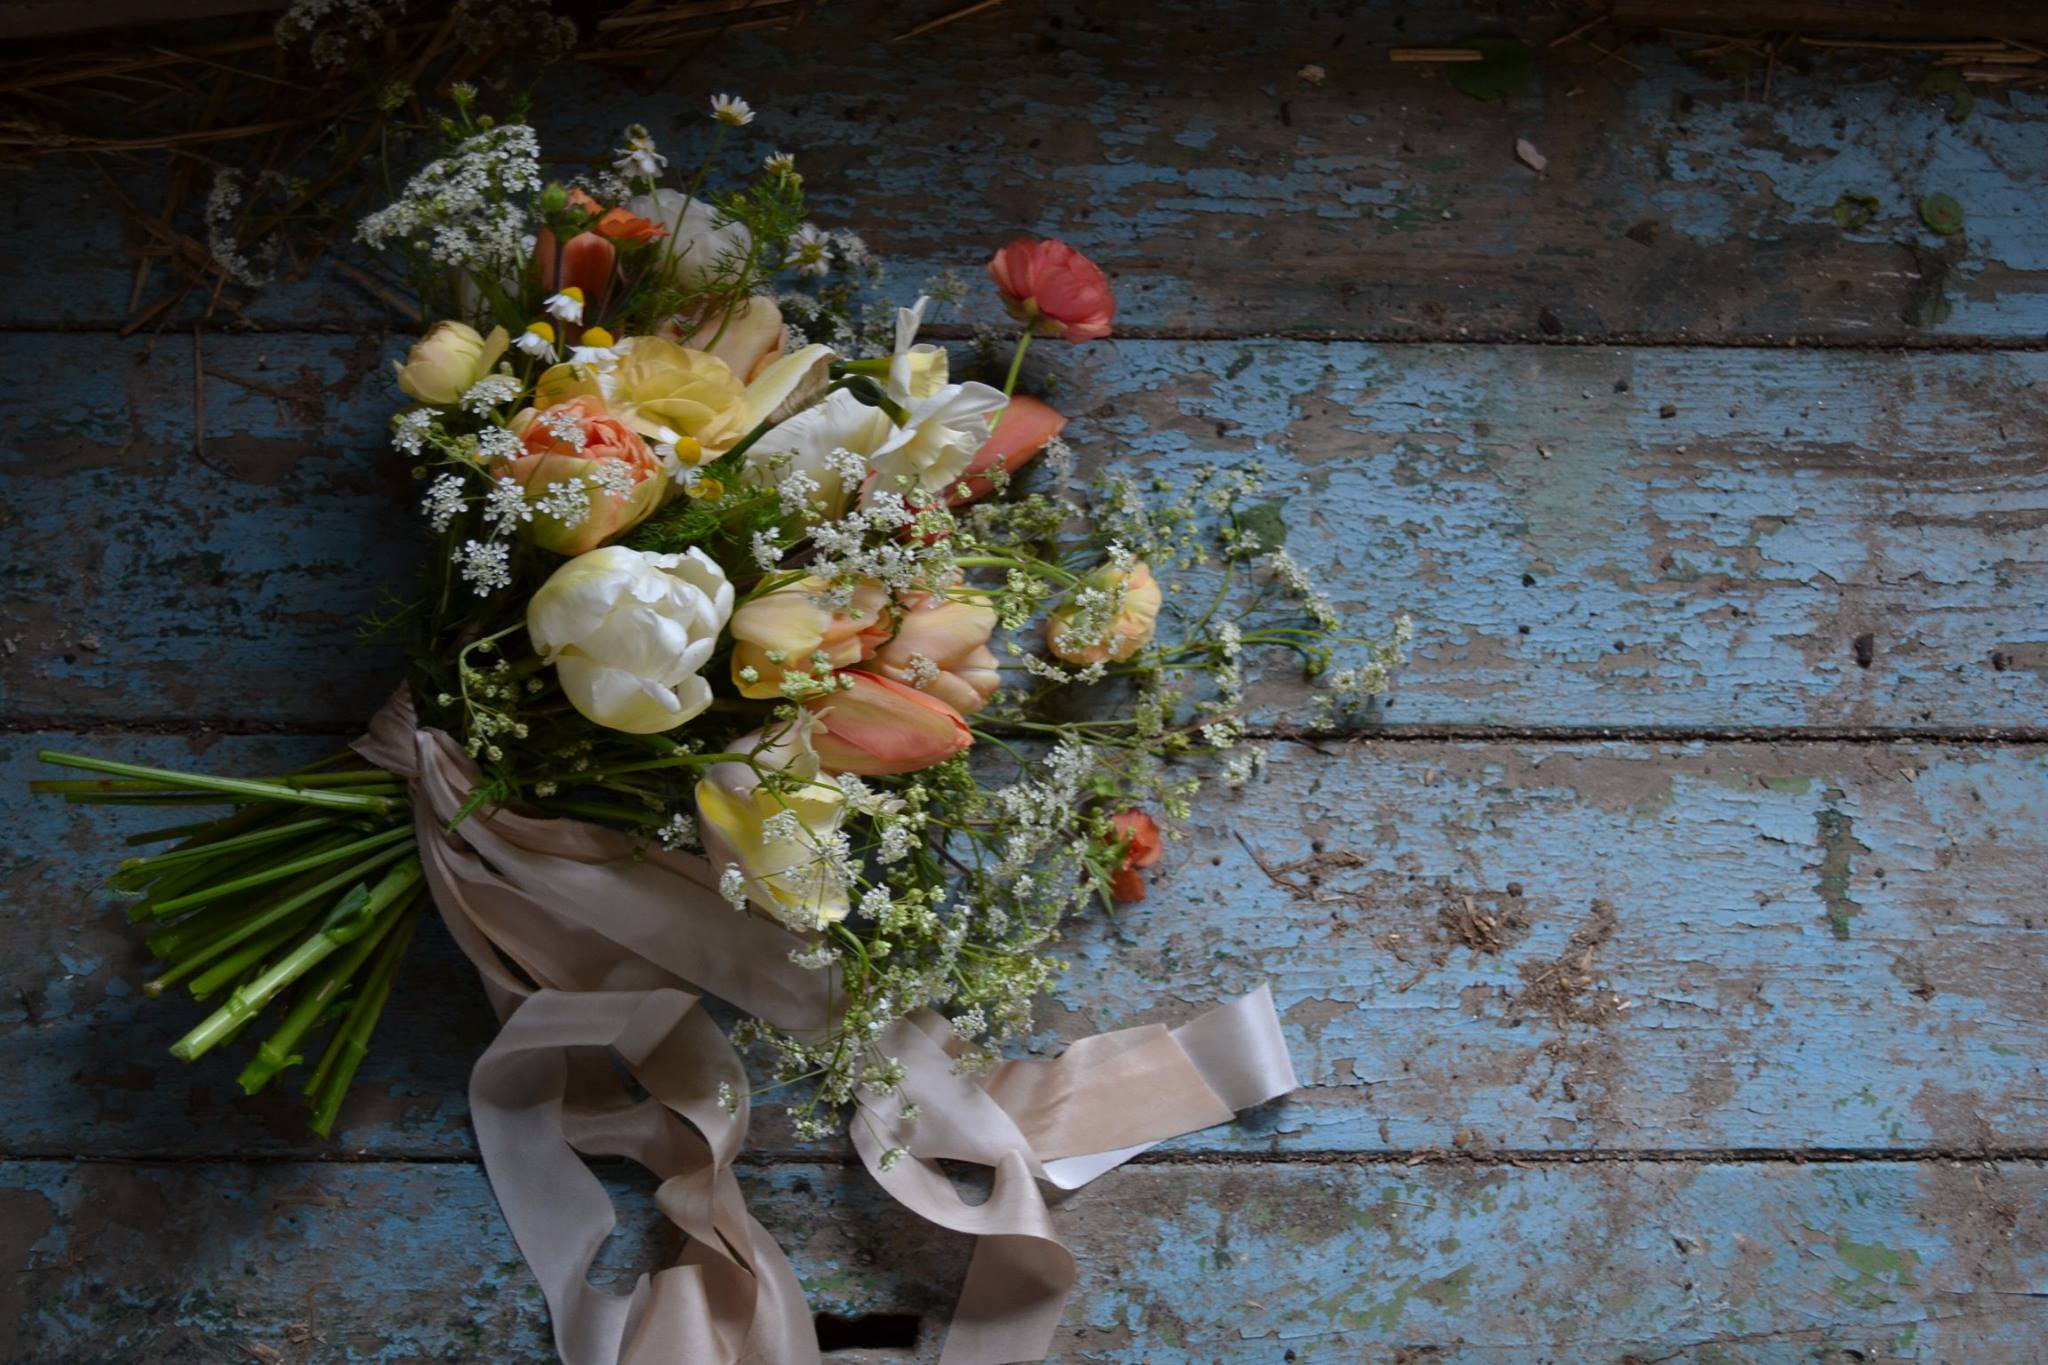 by The Garden Gate Flower Company